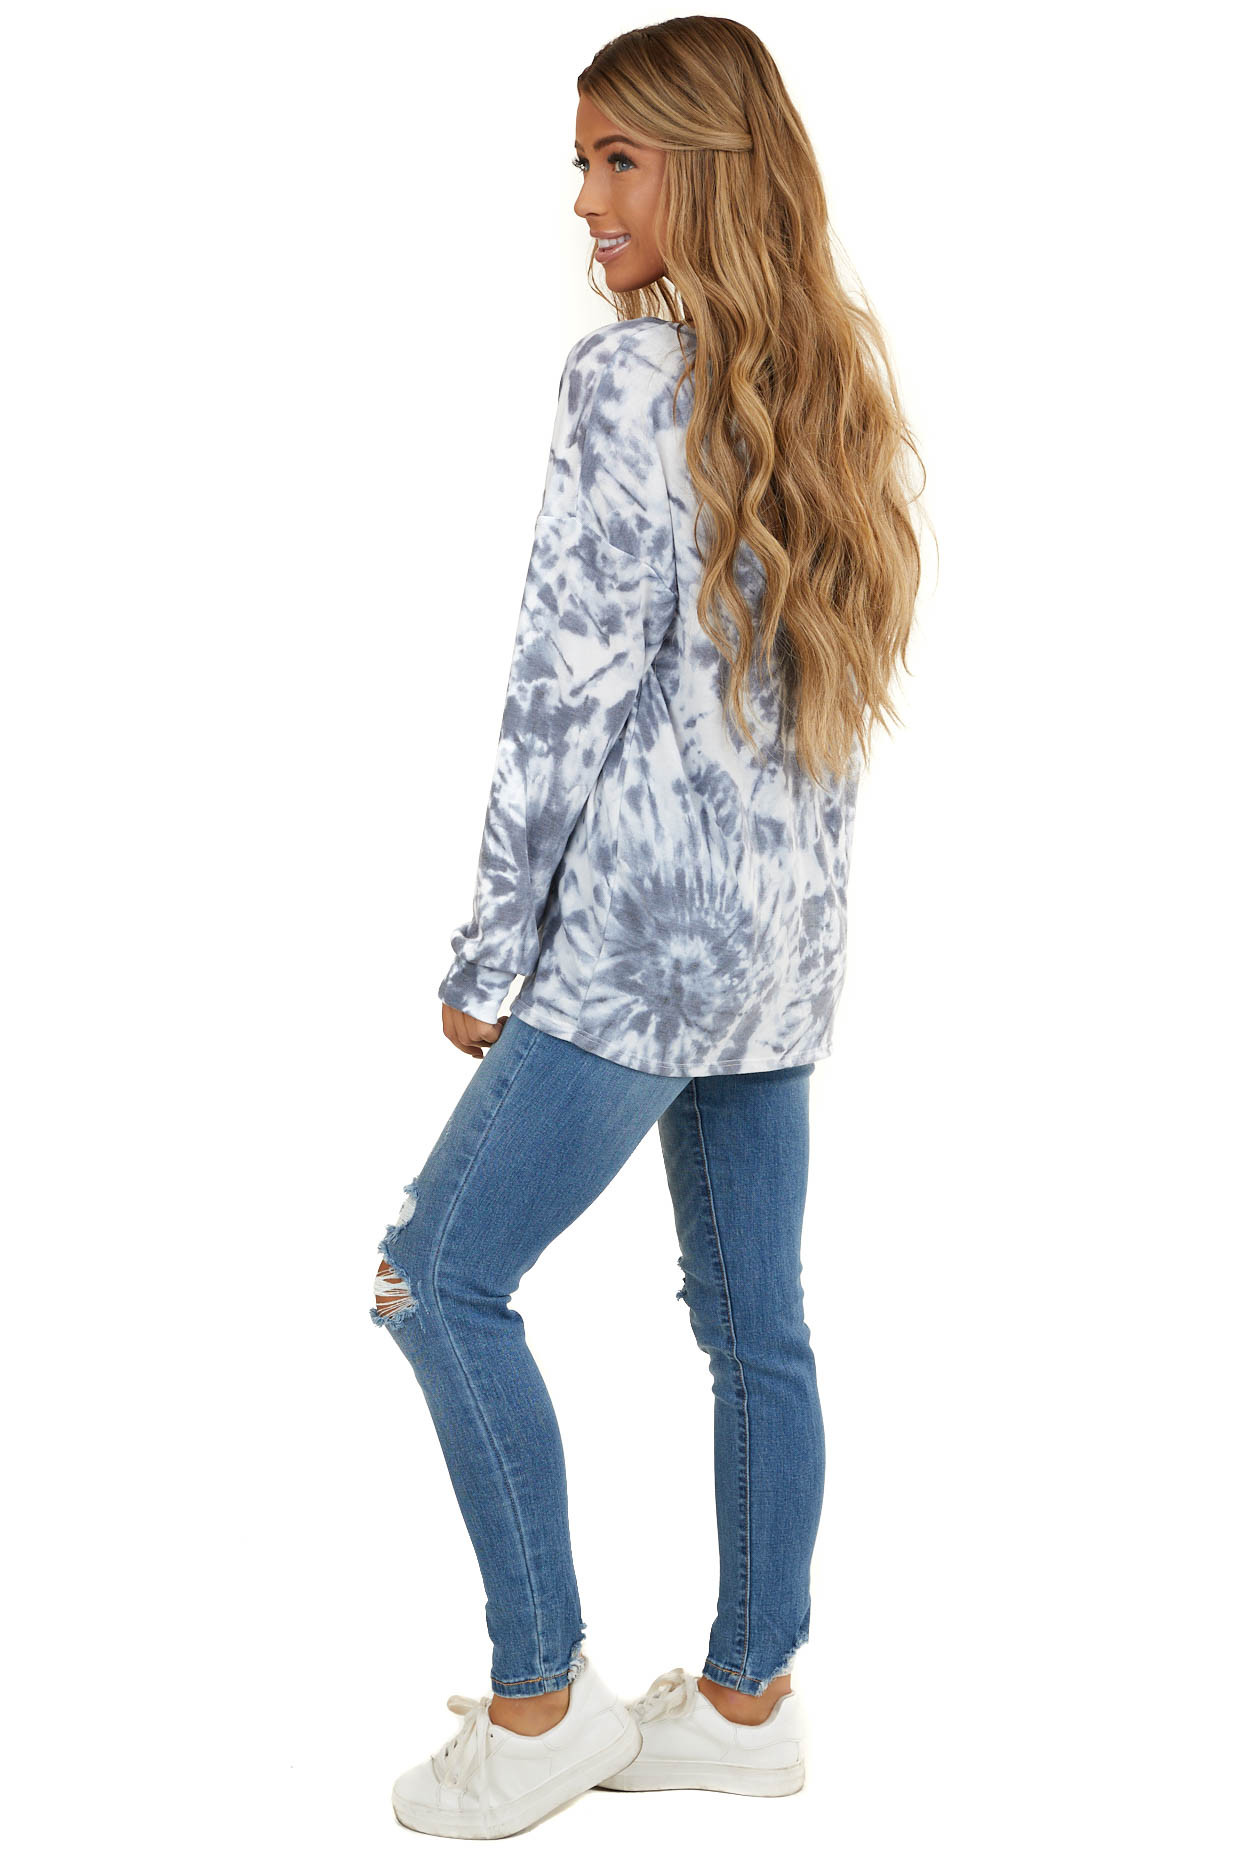 Stormy Grey and Slate Blue Tie Dye Top with Front Pocket